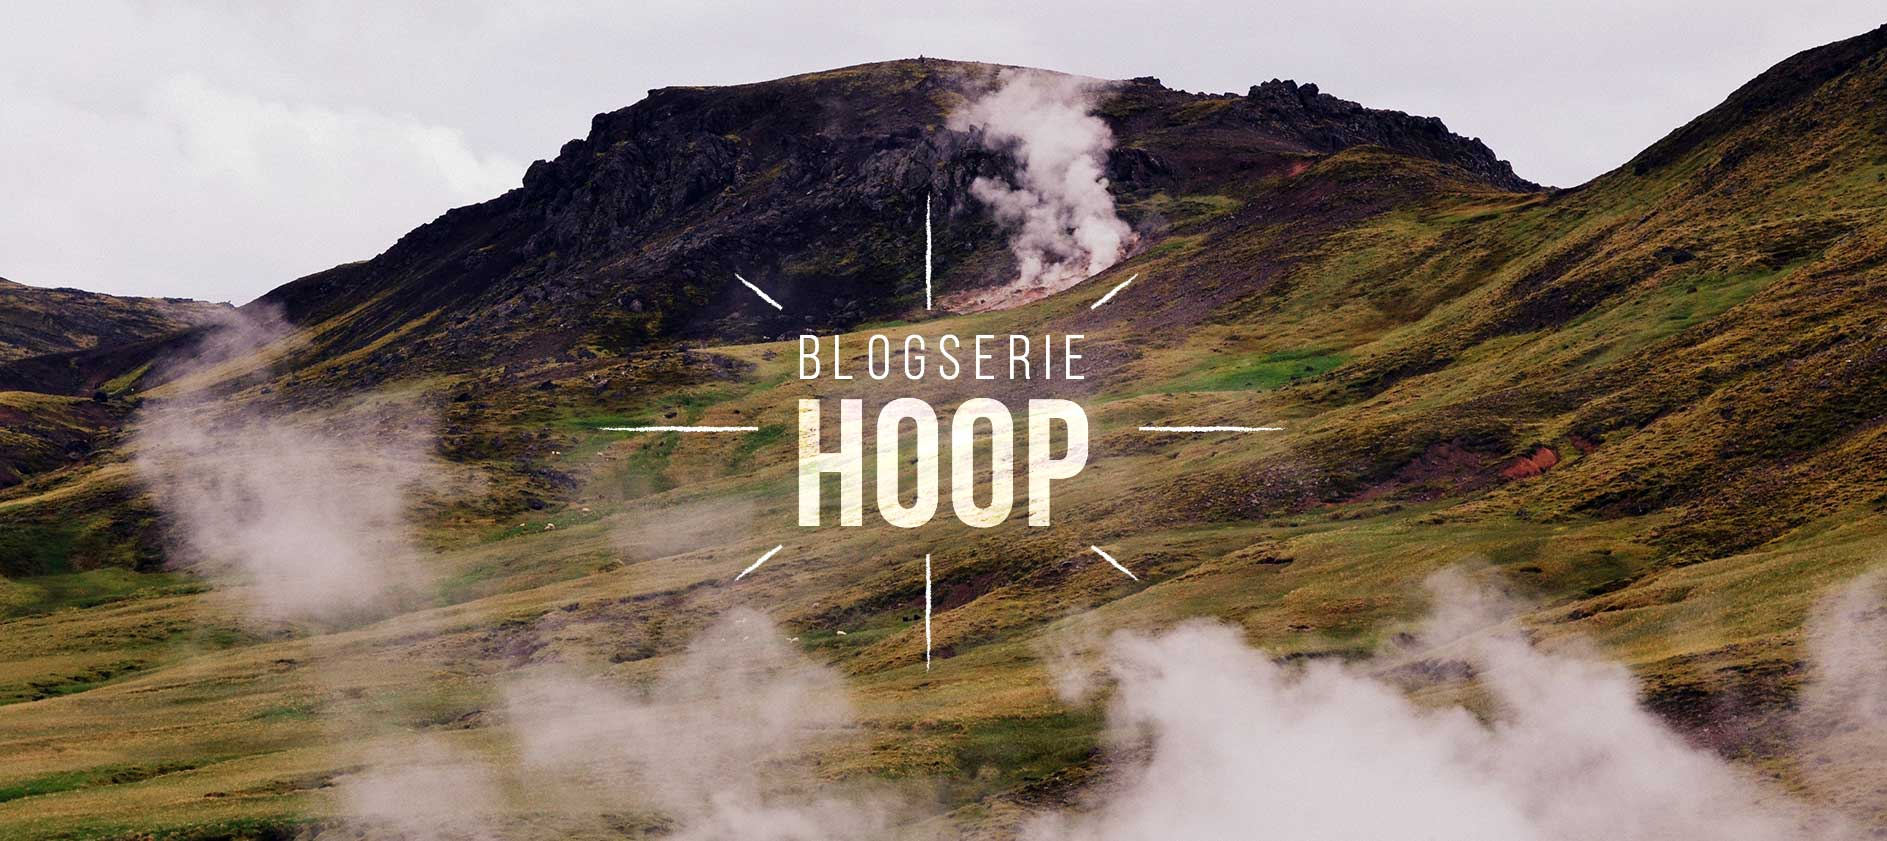 Blog serie over hoop - IJsland geiser